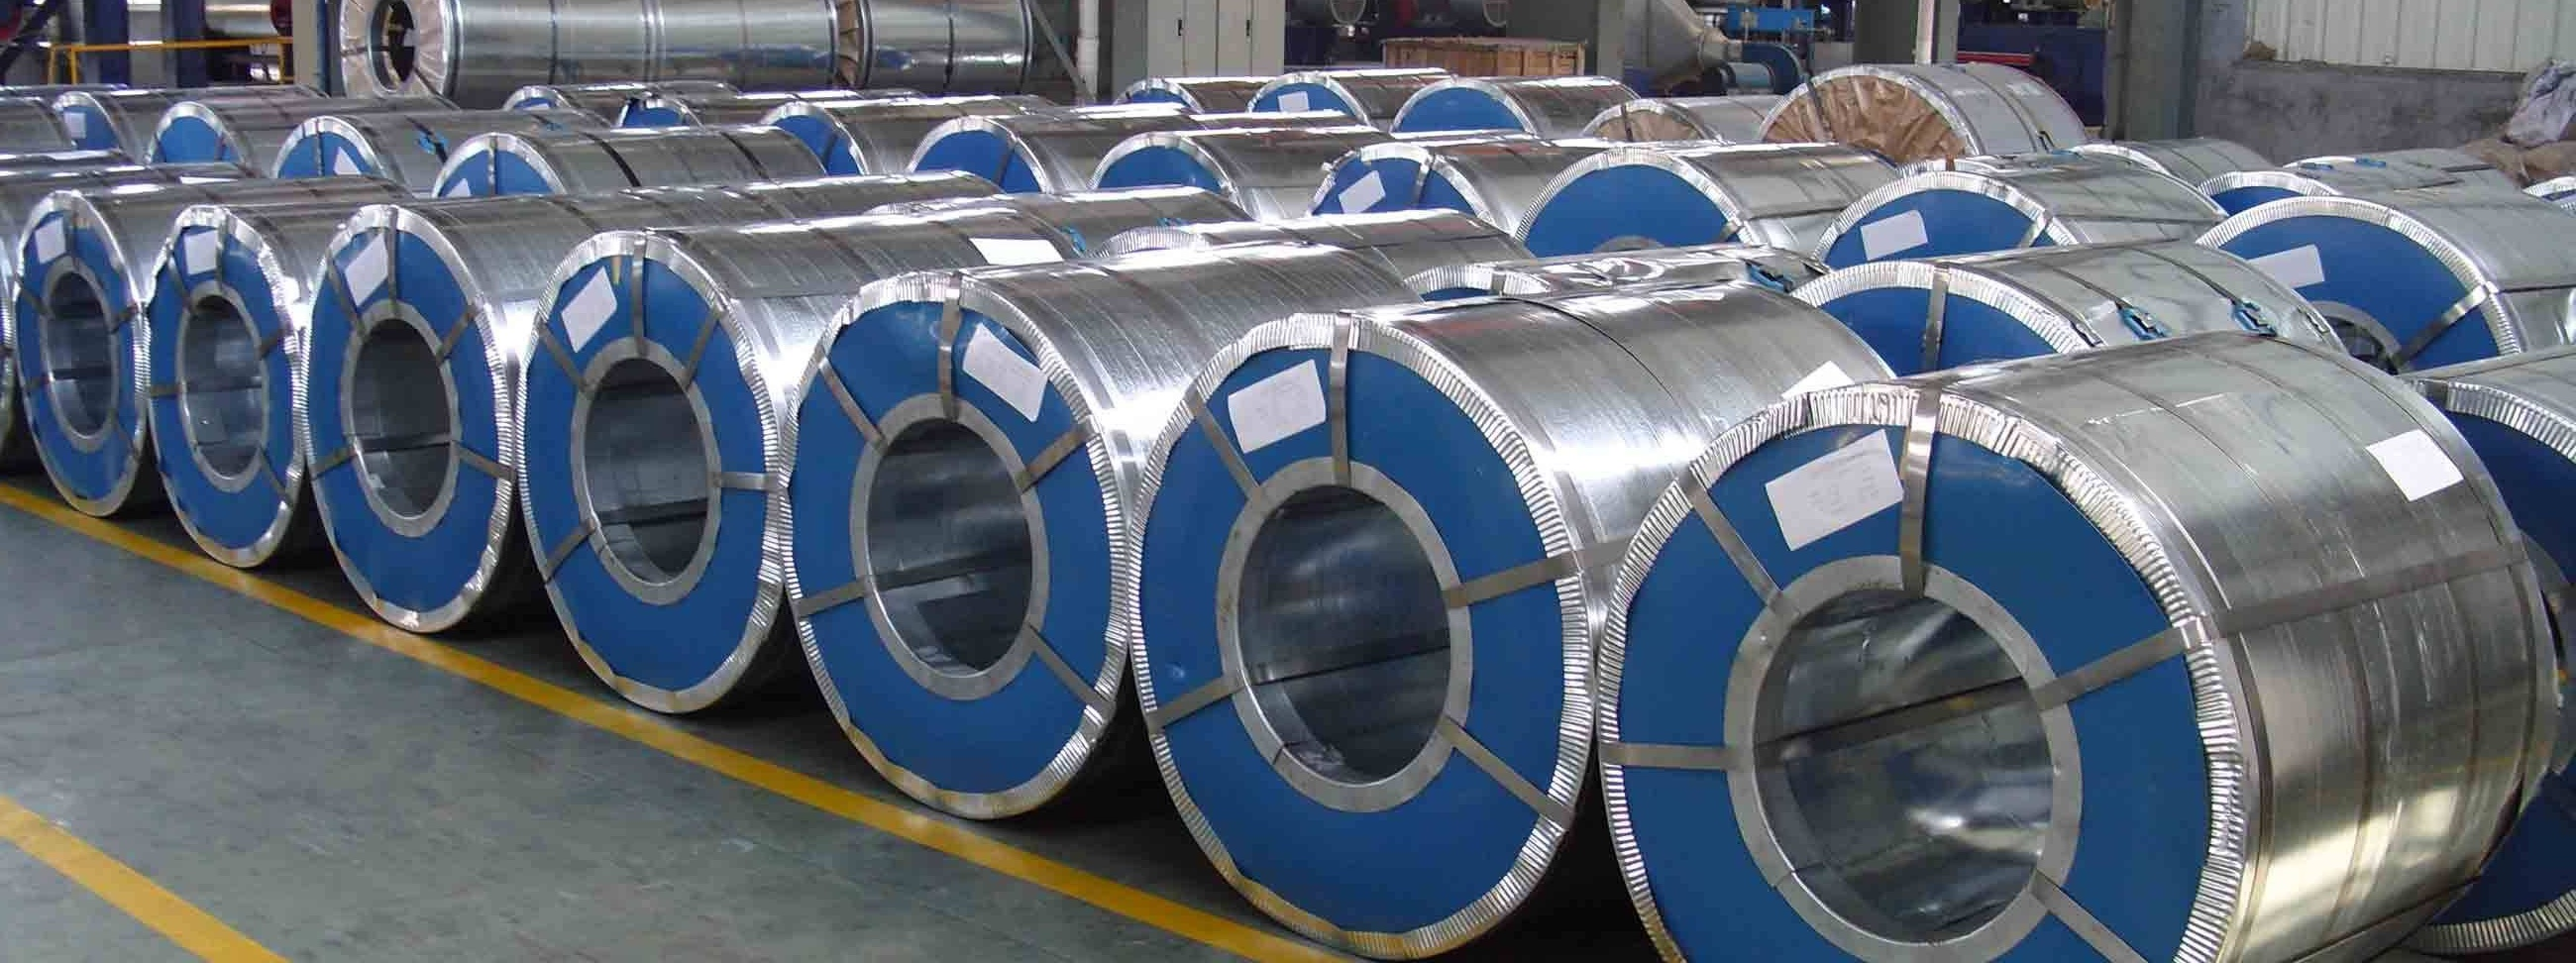 GALVANIZED STEEL WITH POLYMER COATING